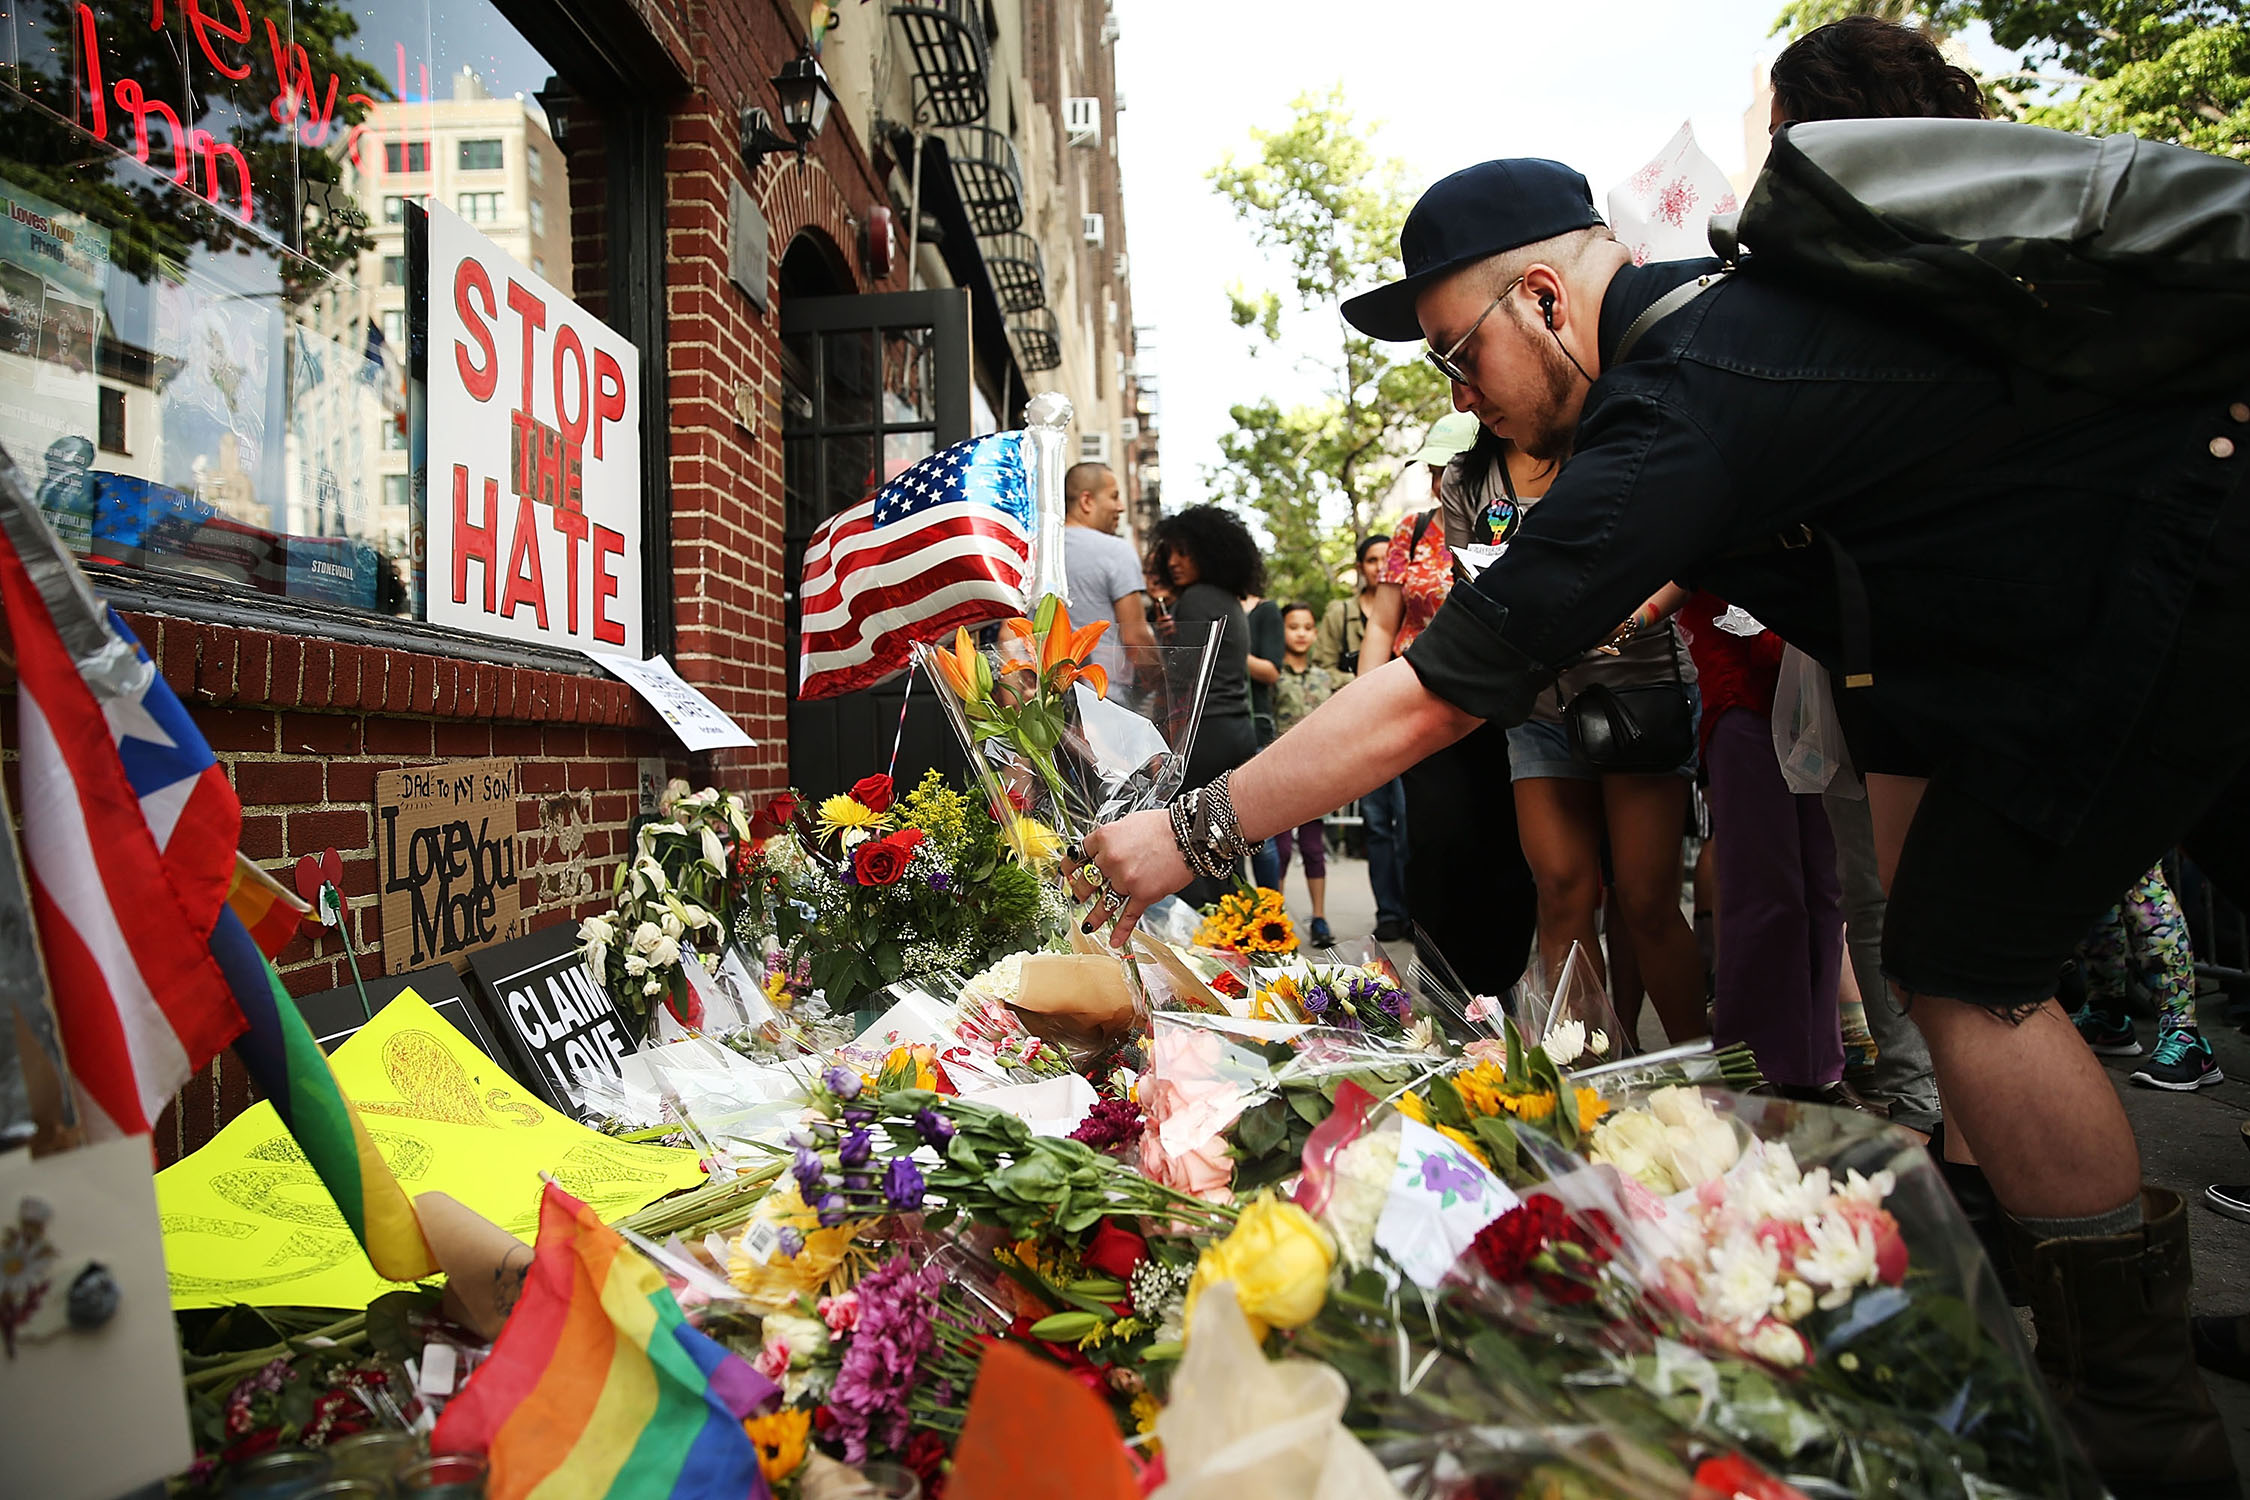 People pause in front of The Stonewall Inn to lay flowers and grieve for those killed in Orlando.